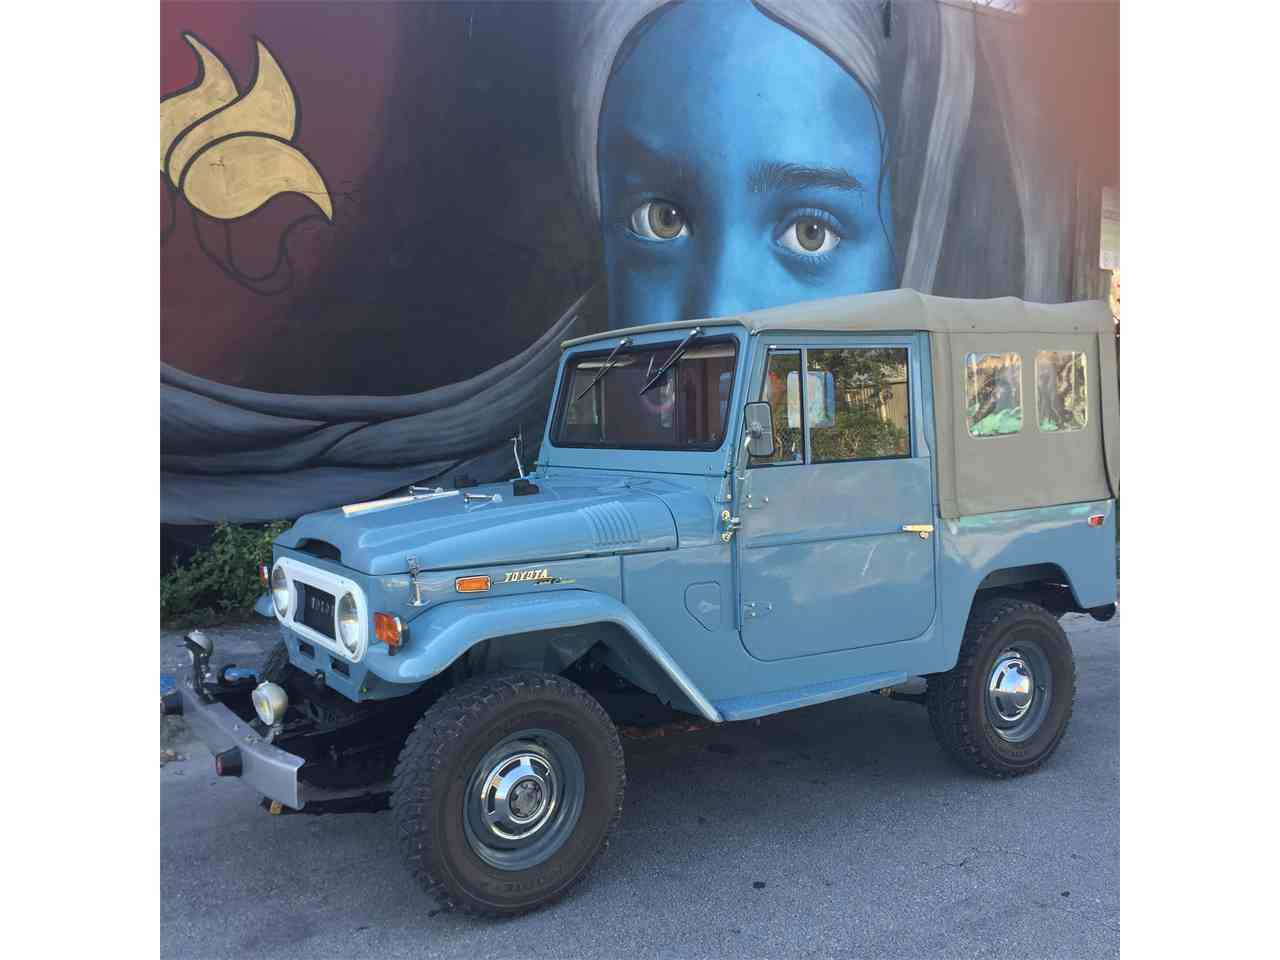 Large Picture of '70 Toyota FJ Cruiser - $90,000.00 Offered by a Private Seller - MAWB